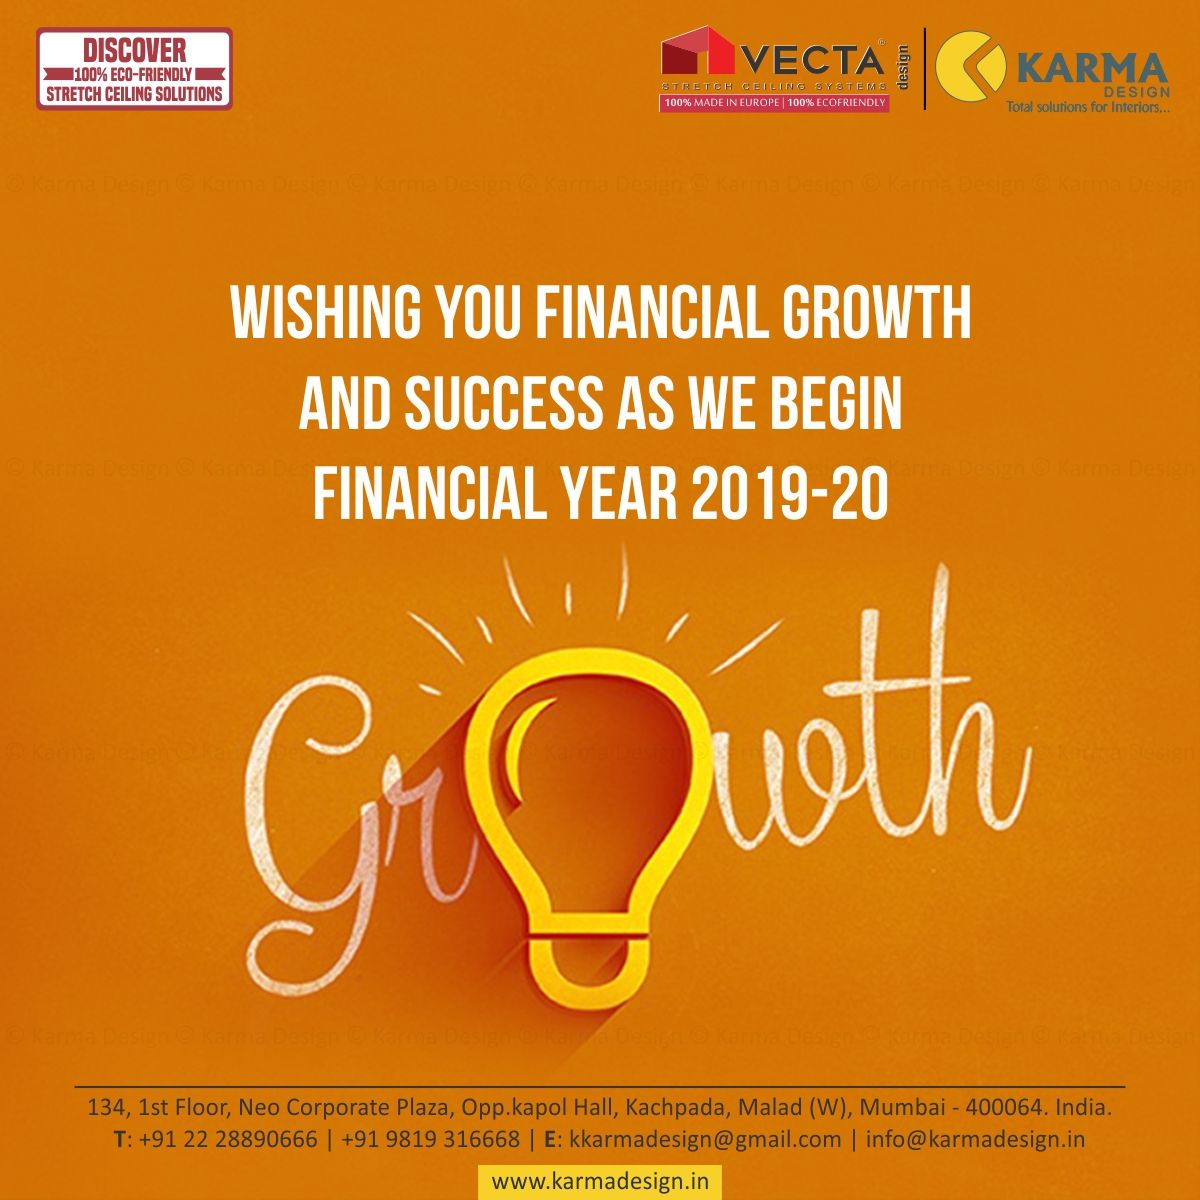 Wishing you financial growth and success as we begin the